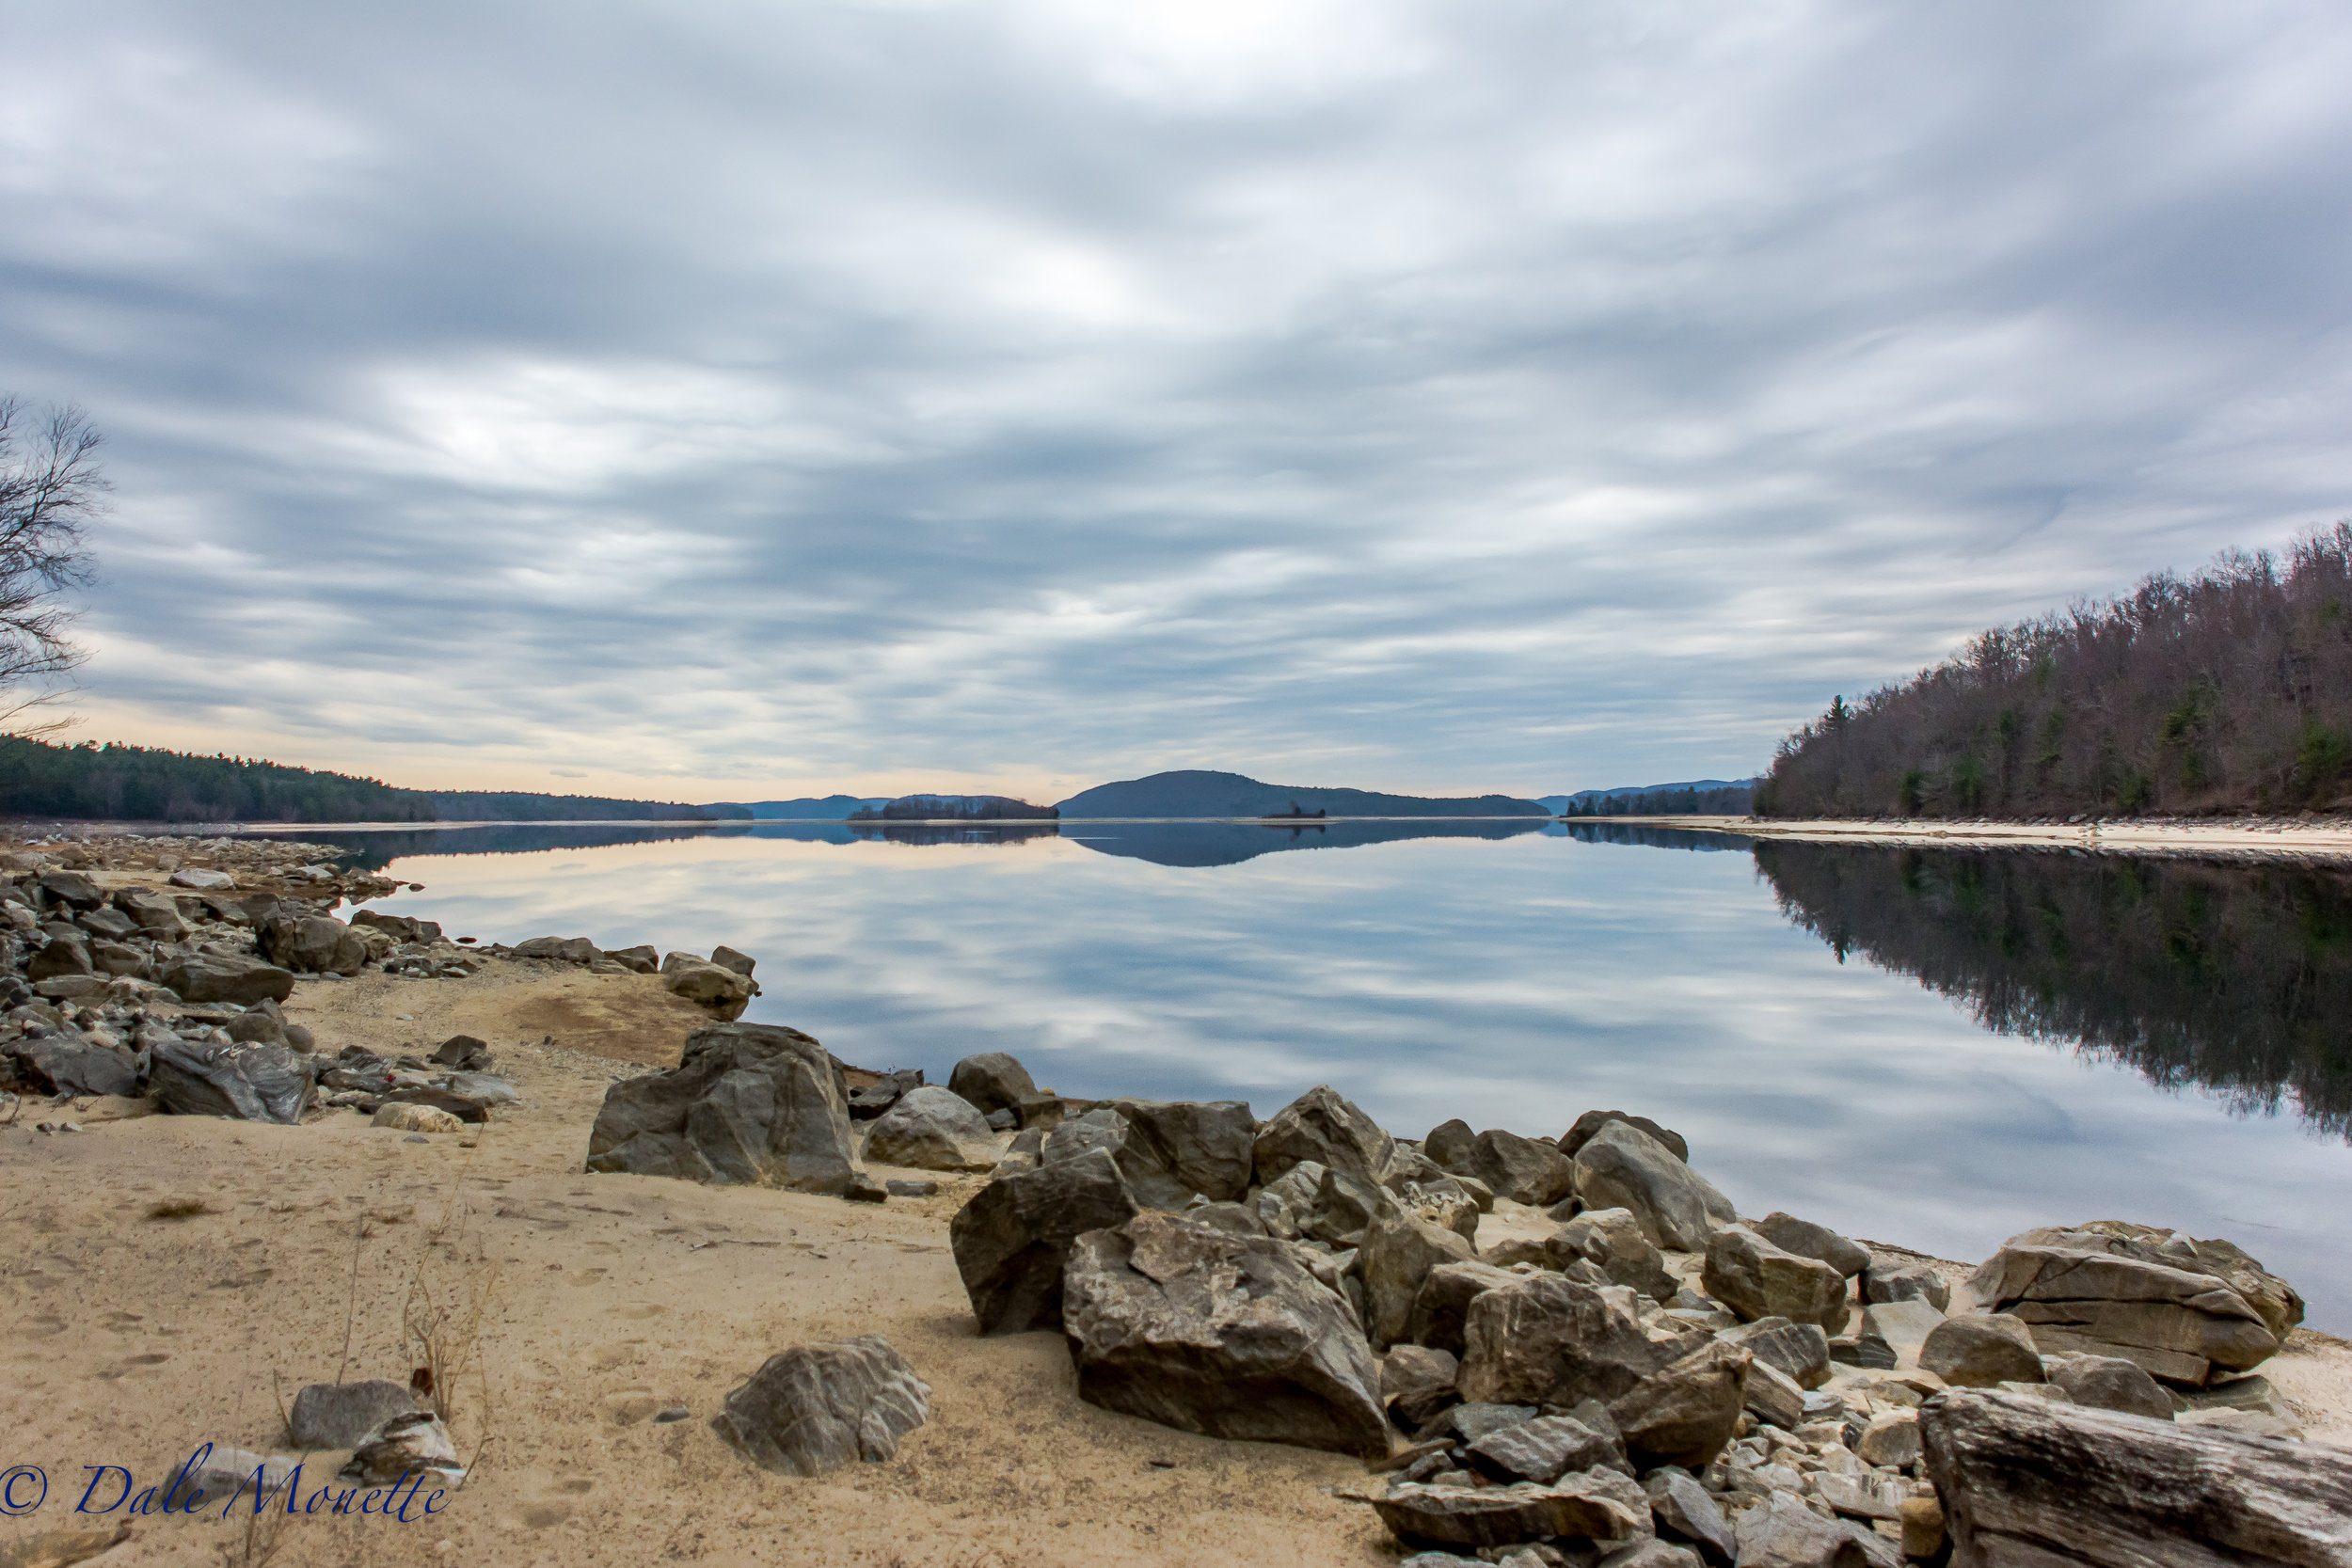 The last 2 morning at Quabbin have been pretty slow, especially today. i've spent 10 hours along the shore in coyote-ville with no luck. Today on the way out the sky was pretty awesome with the rain slowly rolling in. 4/12/17